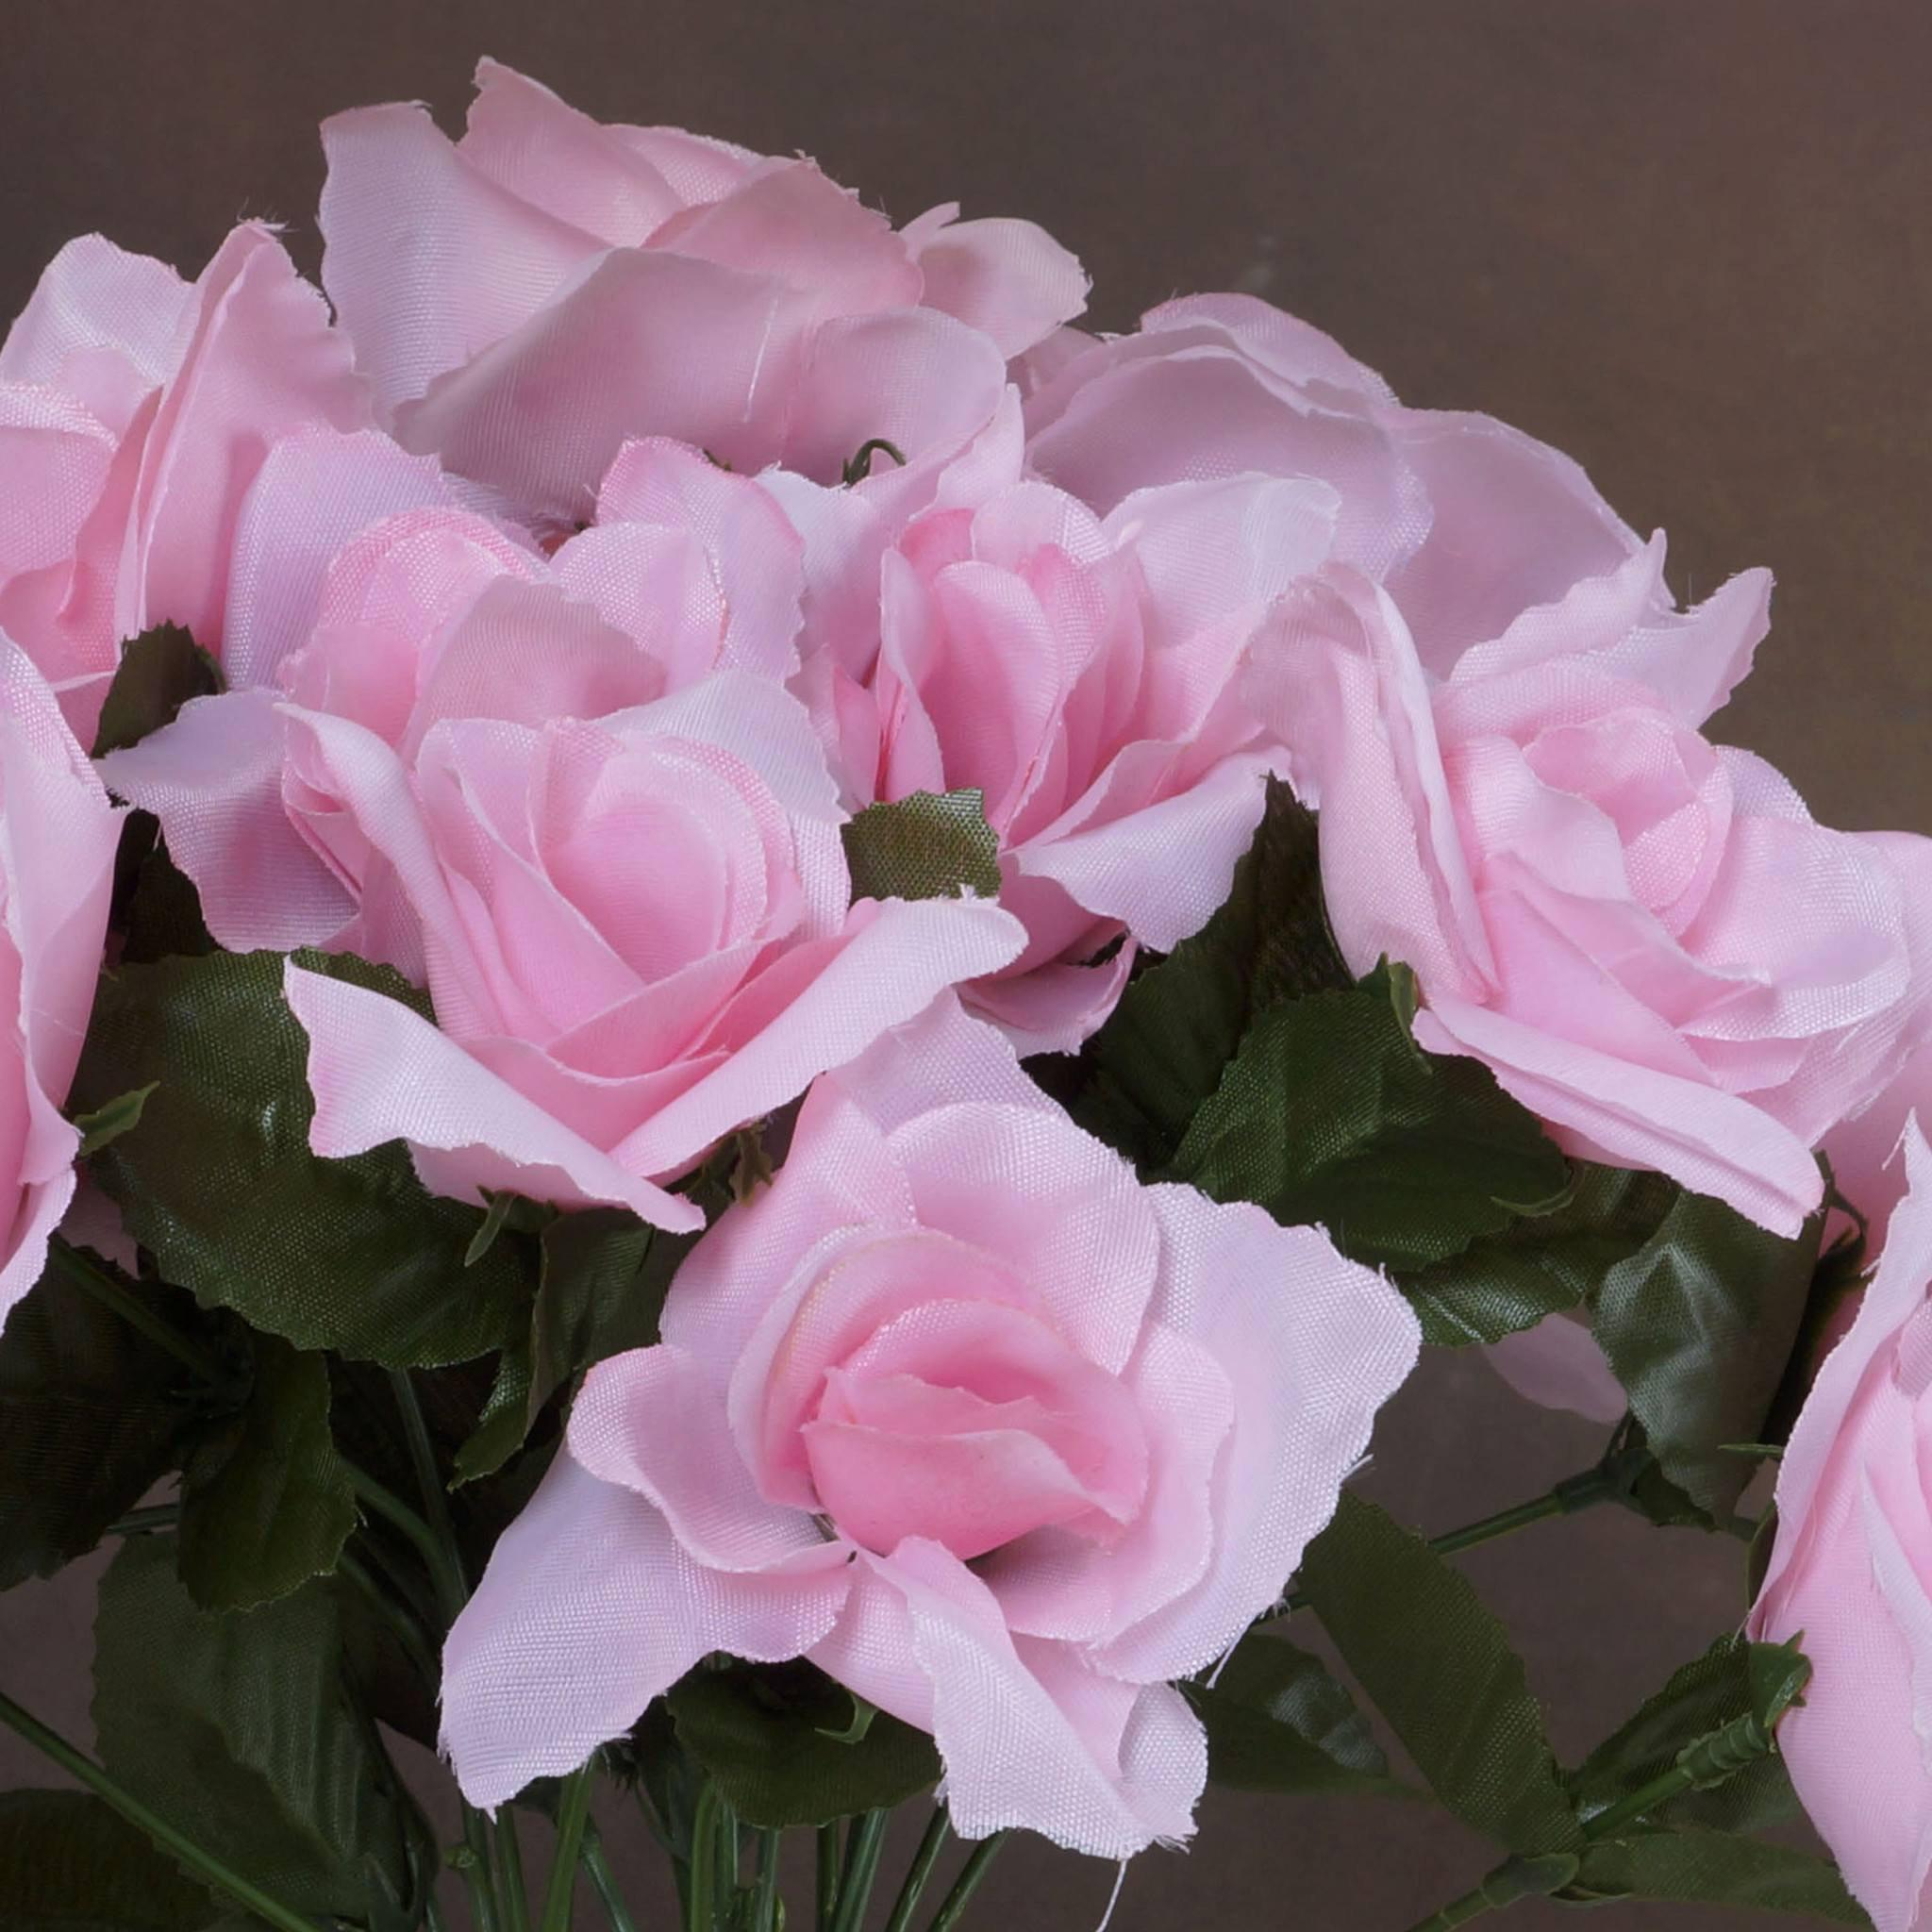 12 Bushes 84 pcs Pink Artificial Silk Rose Flowers With Green Leaves ...